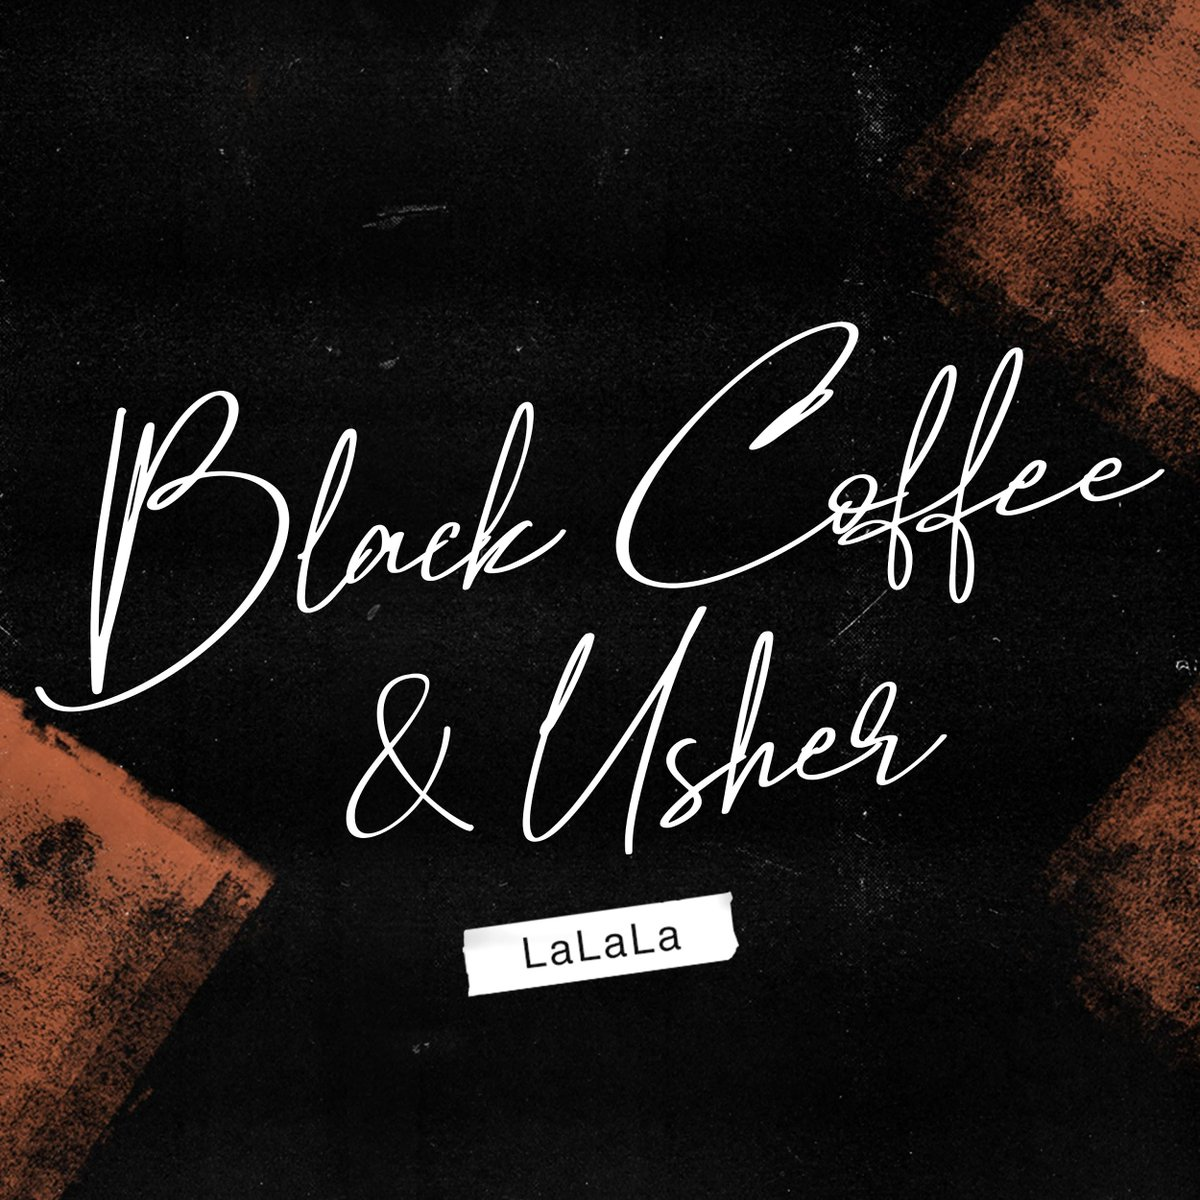 """He's back! R&B legend @Usher returns with a feature on @RealBlackCoffee's instantly addictive """"LaLaLa"""":"""